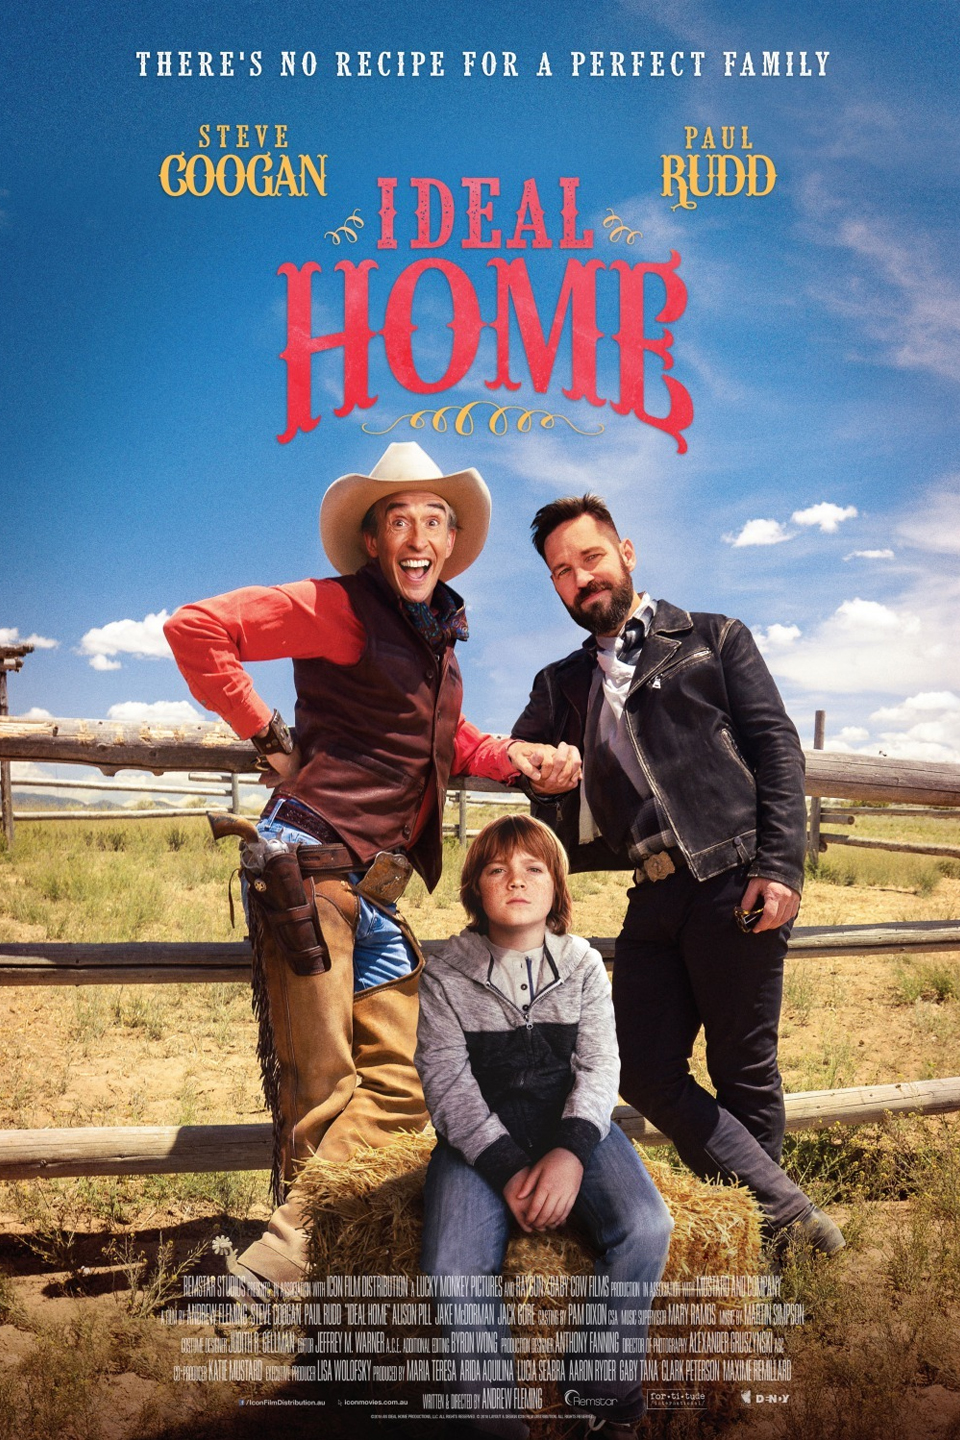 DVD GIVE AWAY COMEDY FILM IDEAL HOME